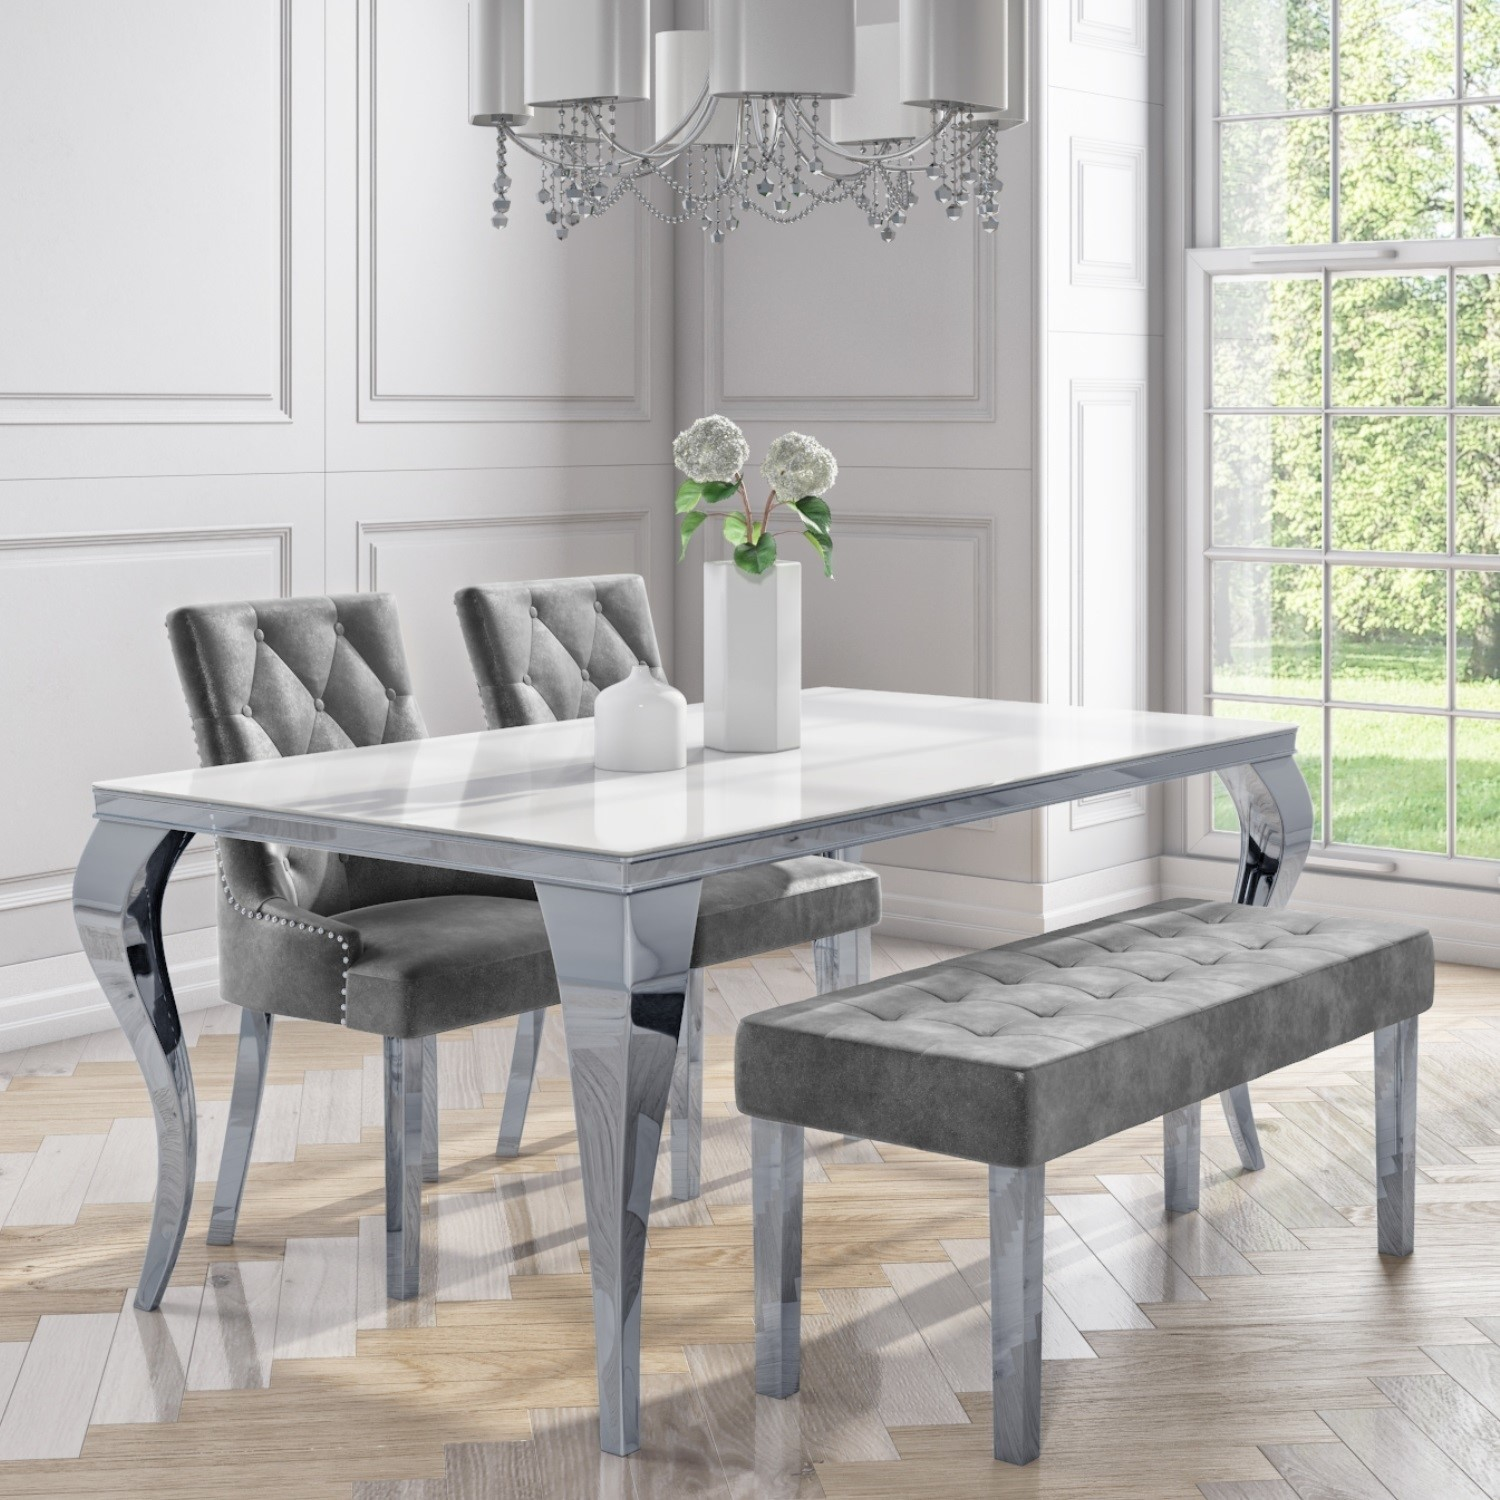 Super White Mirrored Dining Table With 2 Chairs In Grey Velvet 1 Bench Louis Ibusinesslaw Wood Chair Design Ideas Ibusinesslaworg